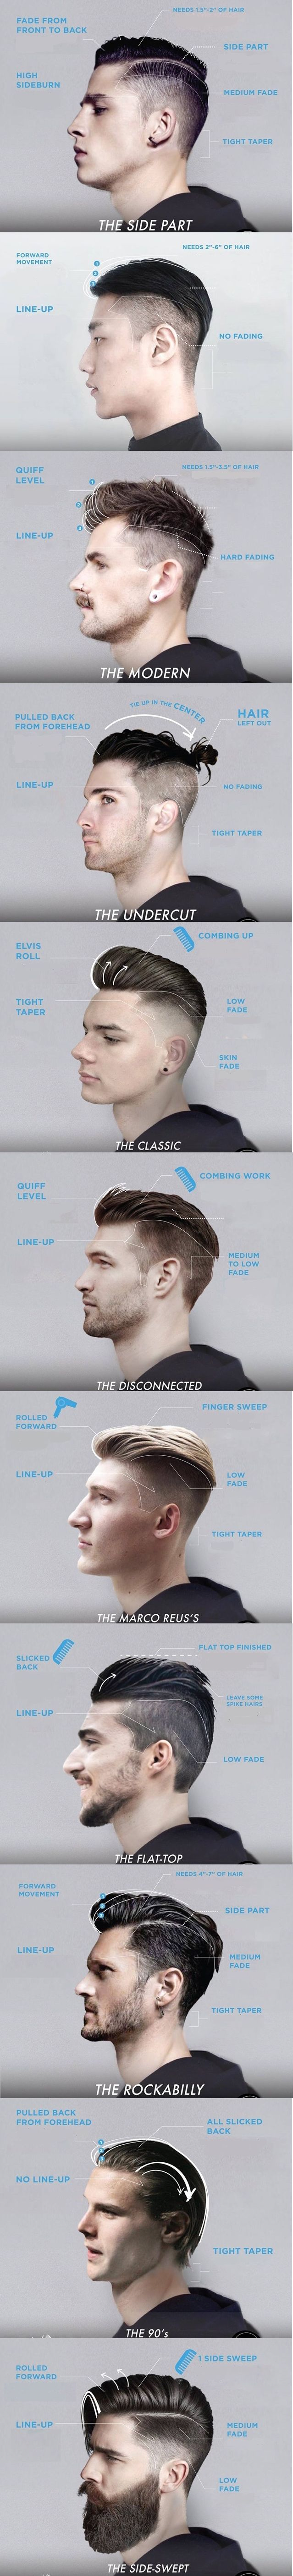 Trendy Hair Styling For Men With Undercut 2016 Infographic Haircuts For Men Mens Hairstyles Hair Styles